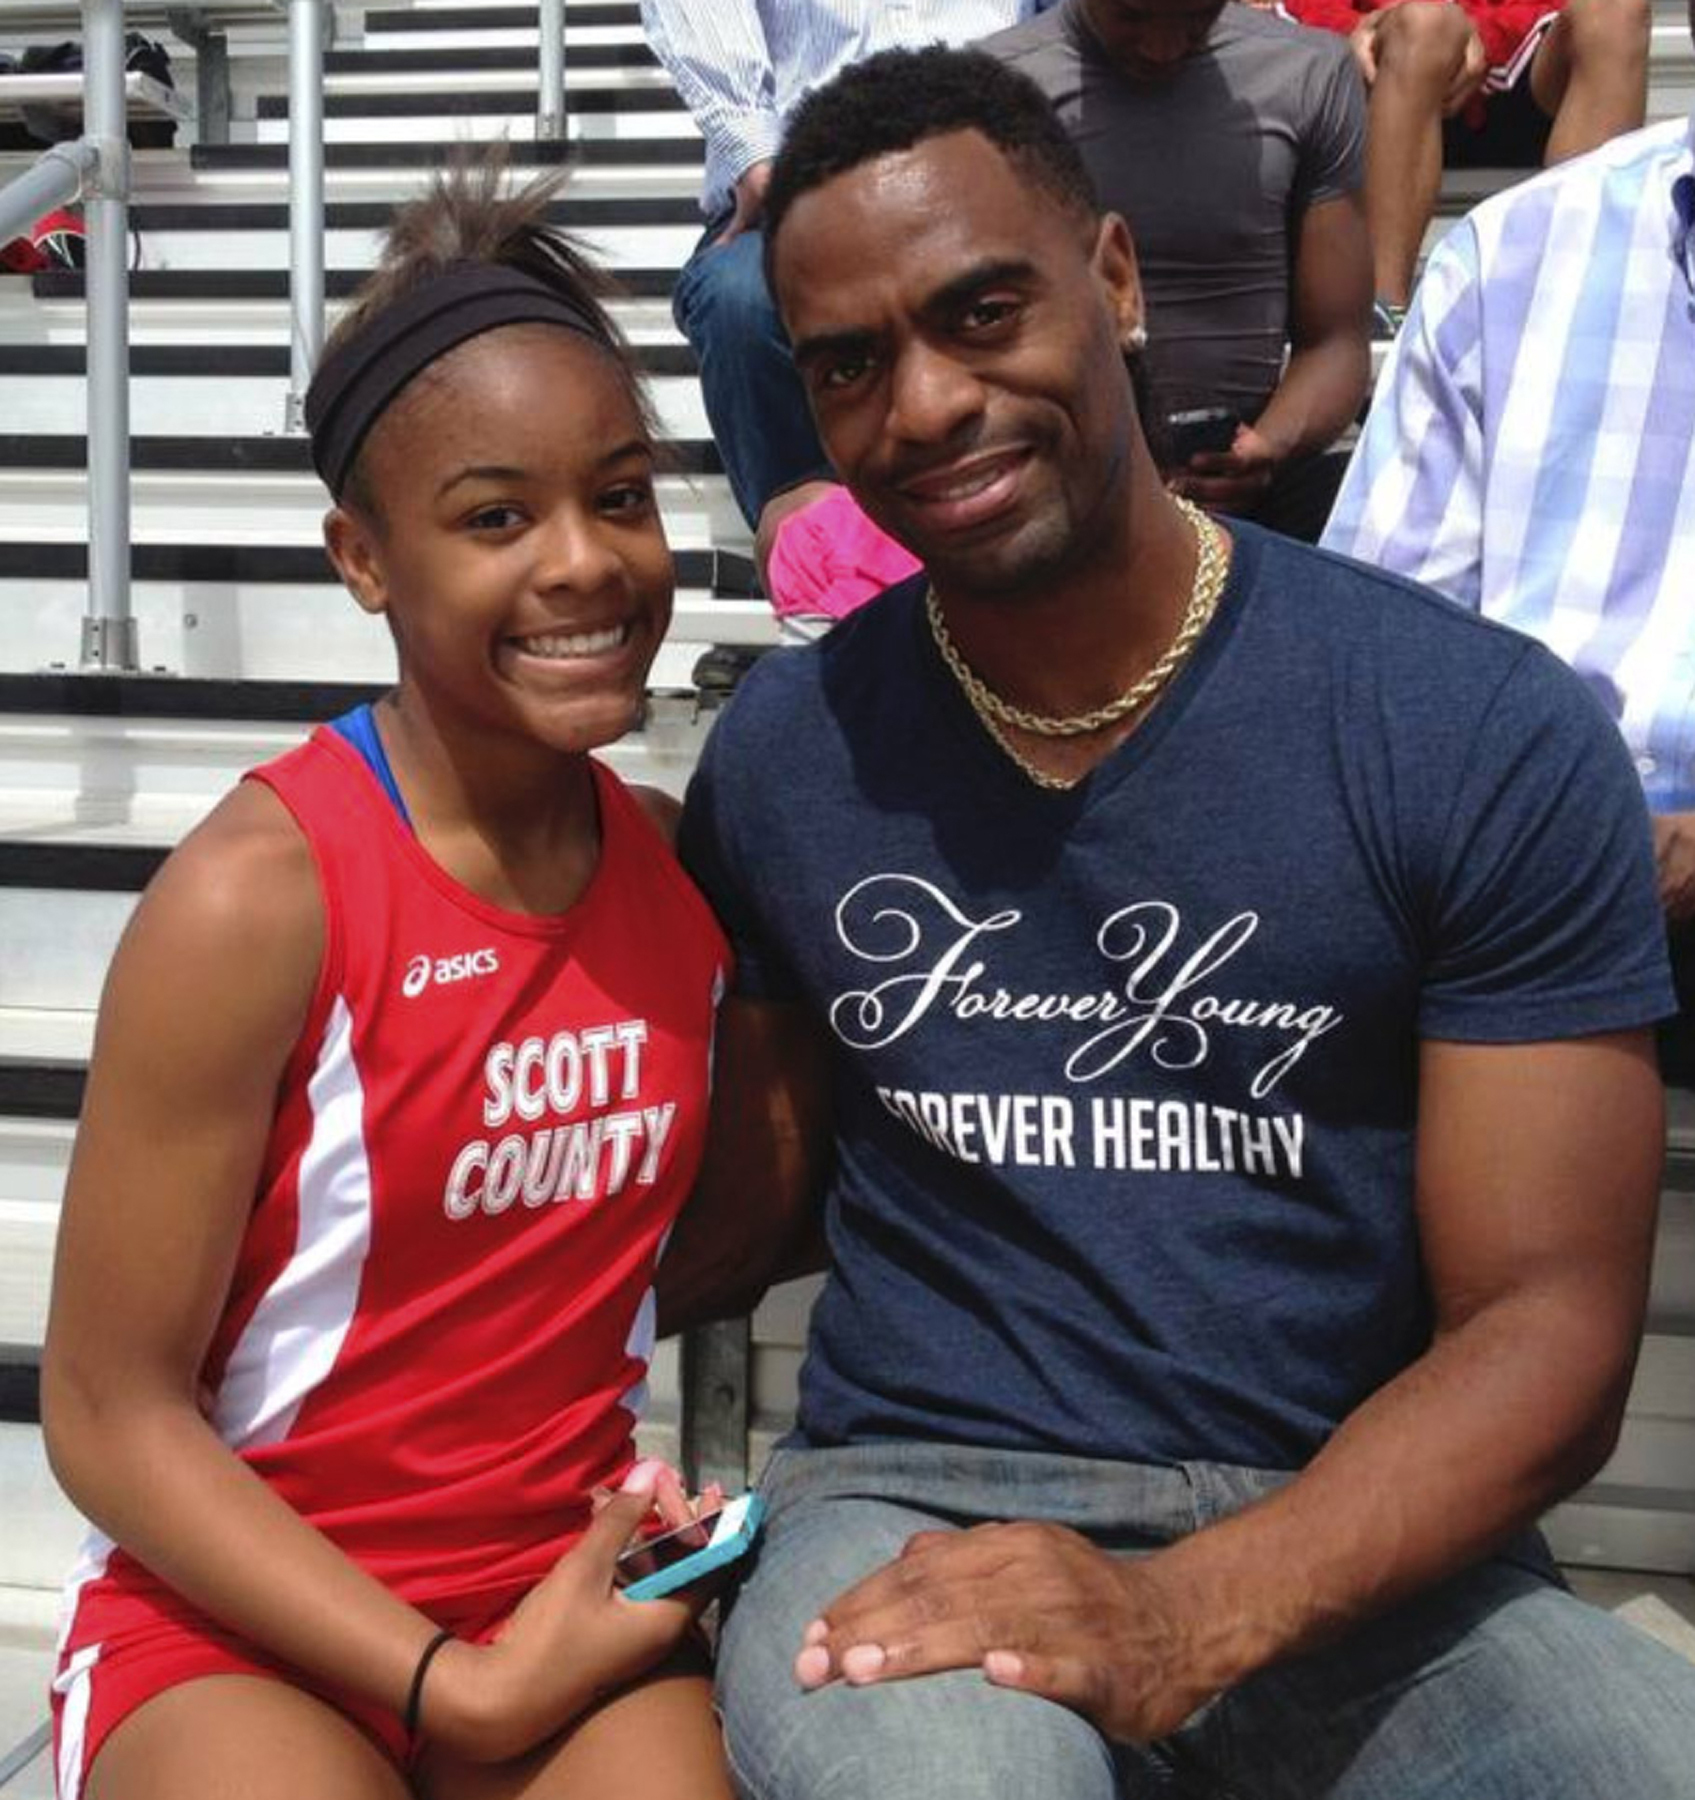 FILE - In this May 3, 2014, file photo, Trinity Gay, a seventh-grader racing for her Scott County High School team, poses for a photo with her father, Tyson Gay, after she won the 100 meters and was part of the winning 4-by-100 and 4-by-200 relays at the